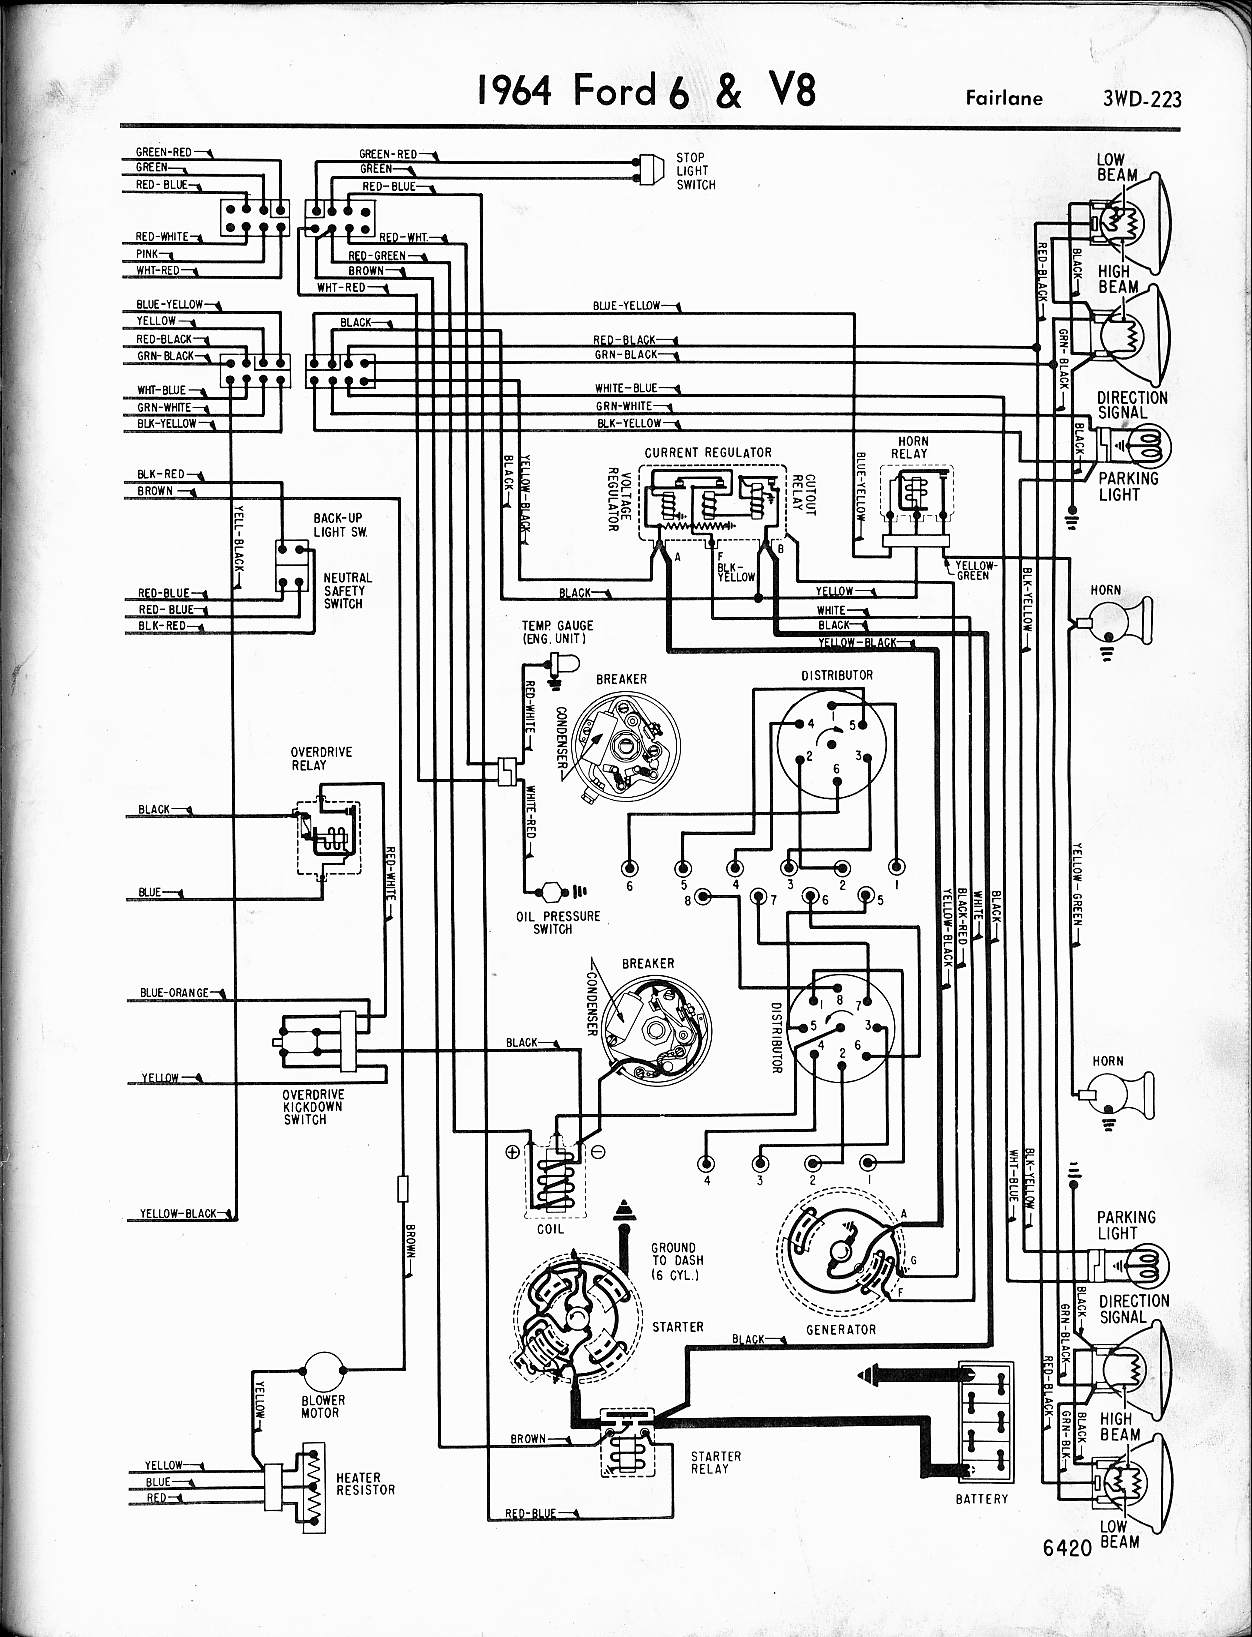 57 65 Ford Wiring Diagrams Black Max Generator Diagram 1964 6 V8 Fairlane Right